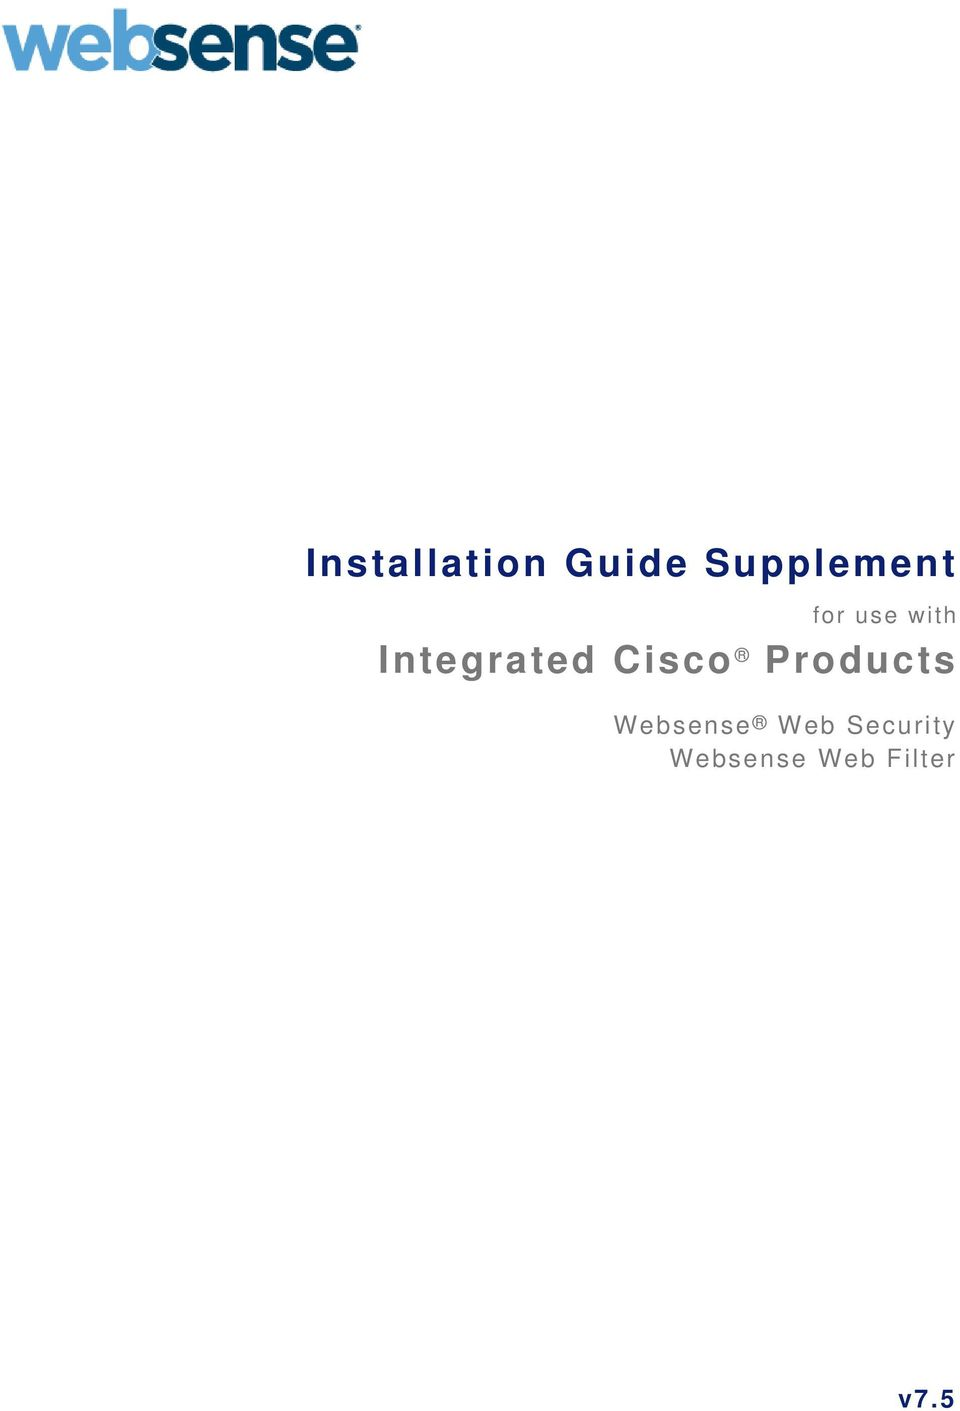 Integrated Cisco Products